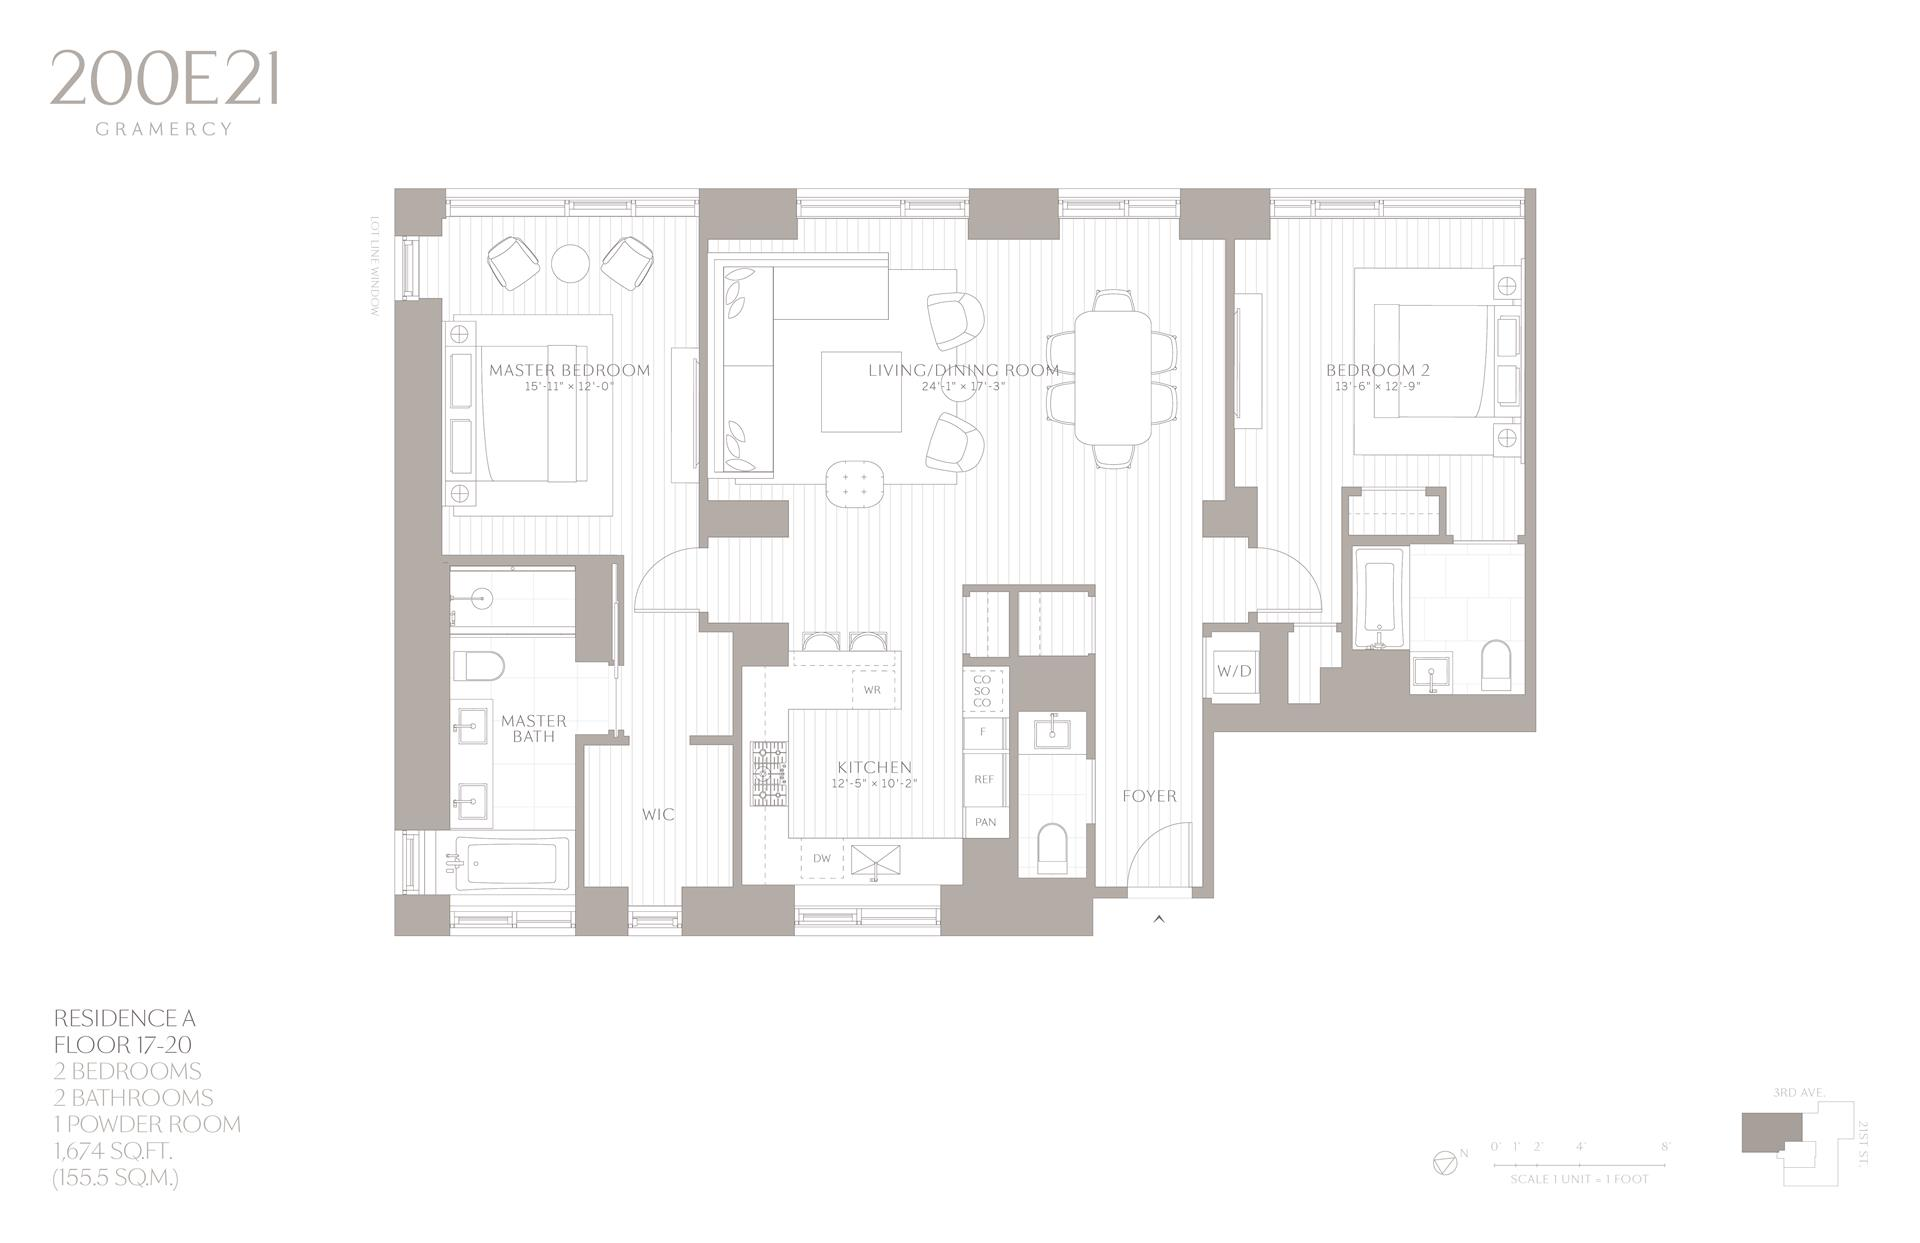 Floor plan of 200 East 21st St, 18A - Gramercy - Union Square, New York